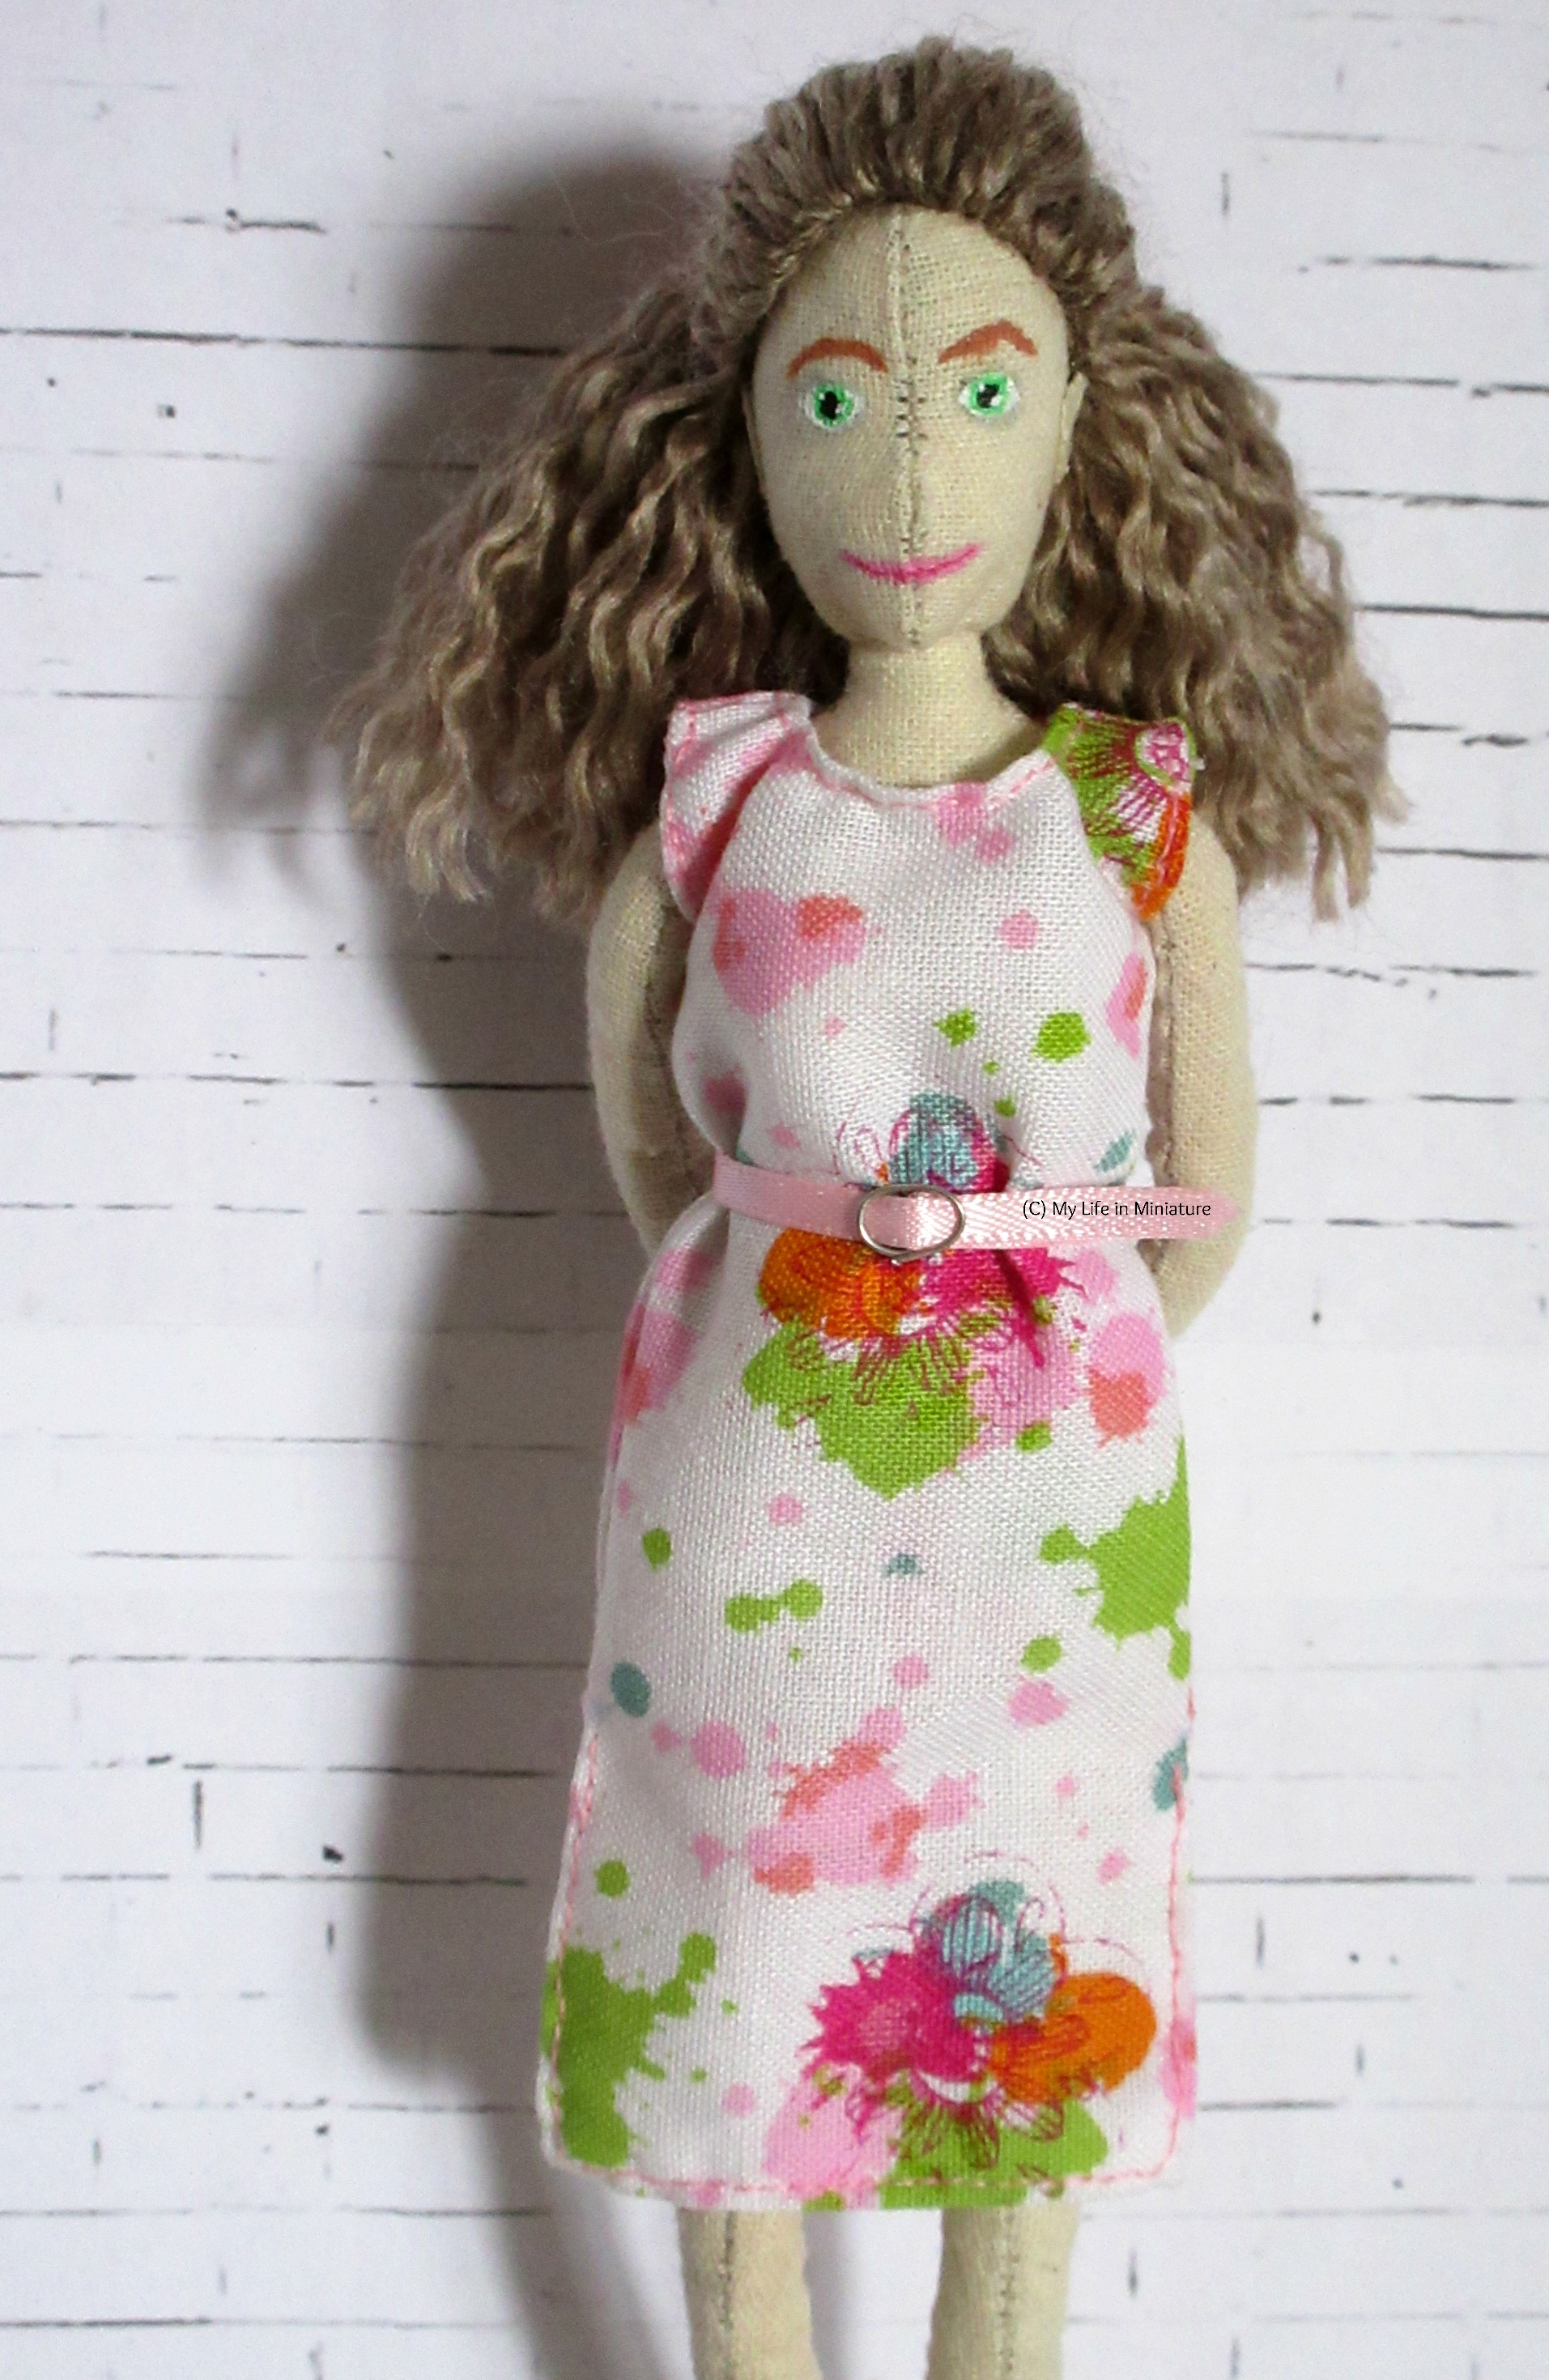 The muslin doll, Lola, wears a white, pink, and green floral knee-length dress with a pink belt. Her hands are behind her back and she looks at the camera.